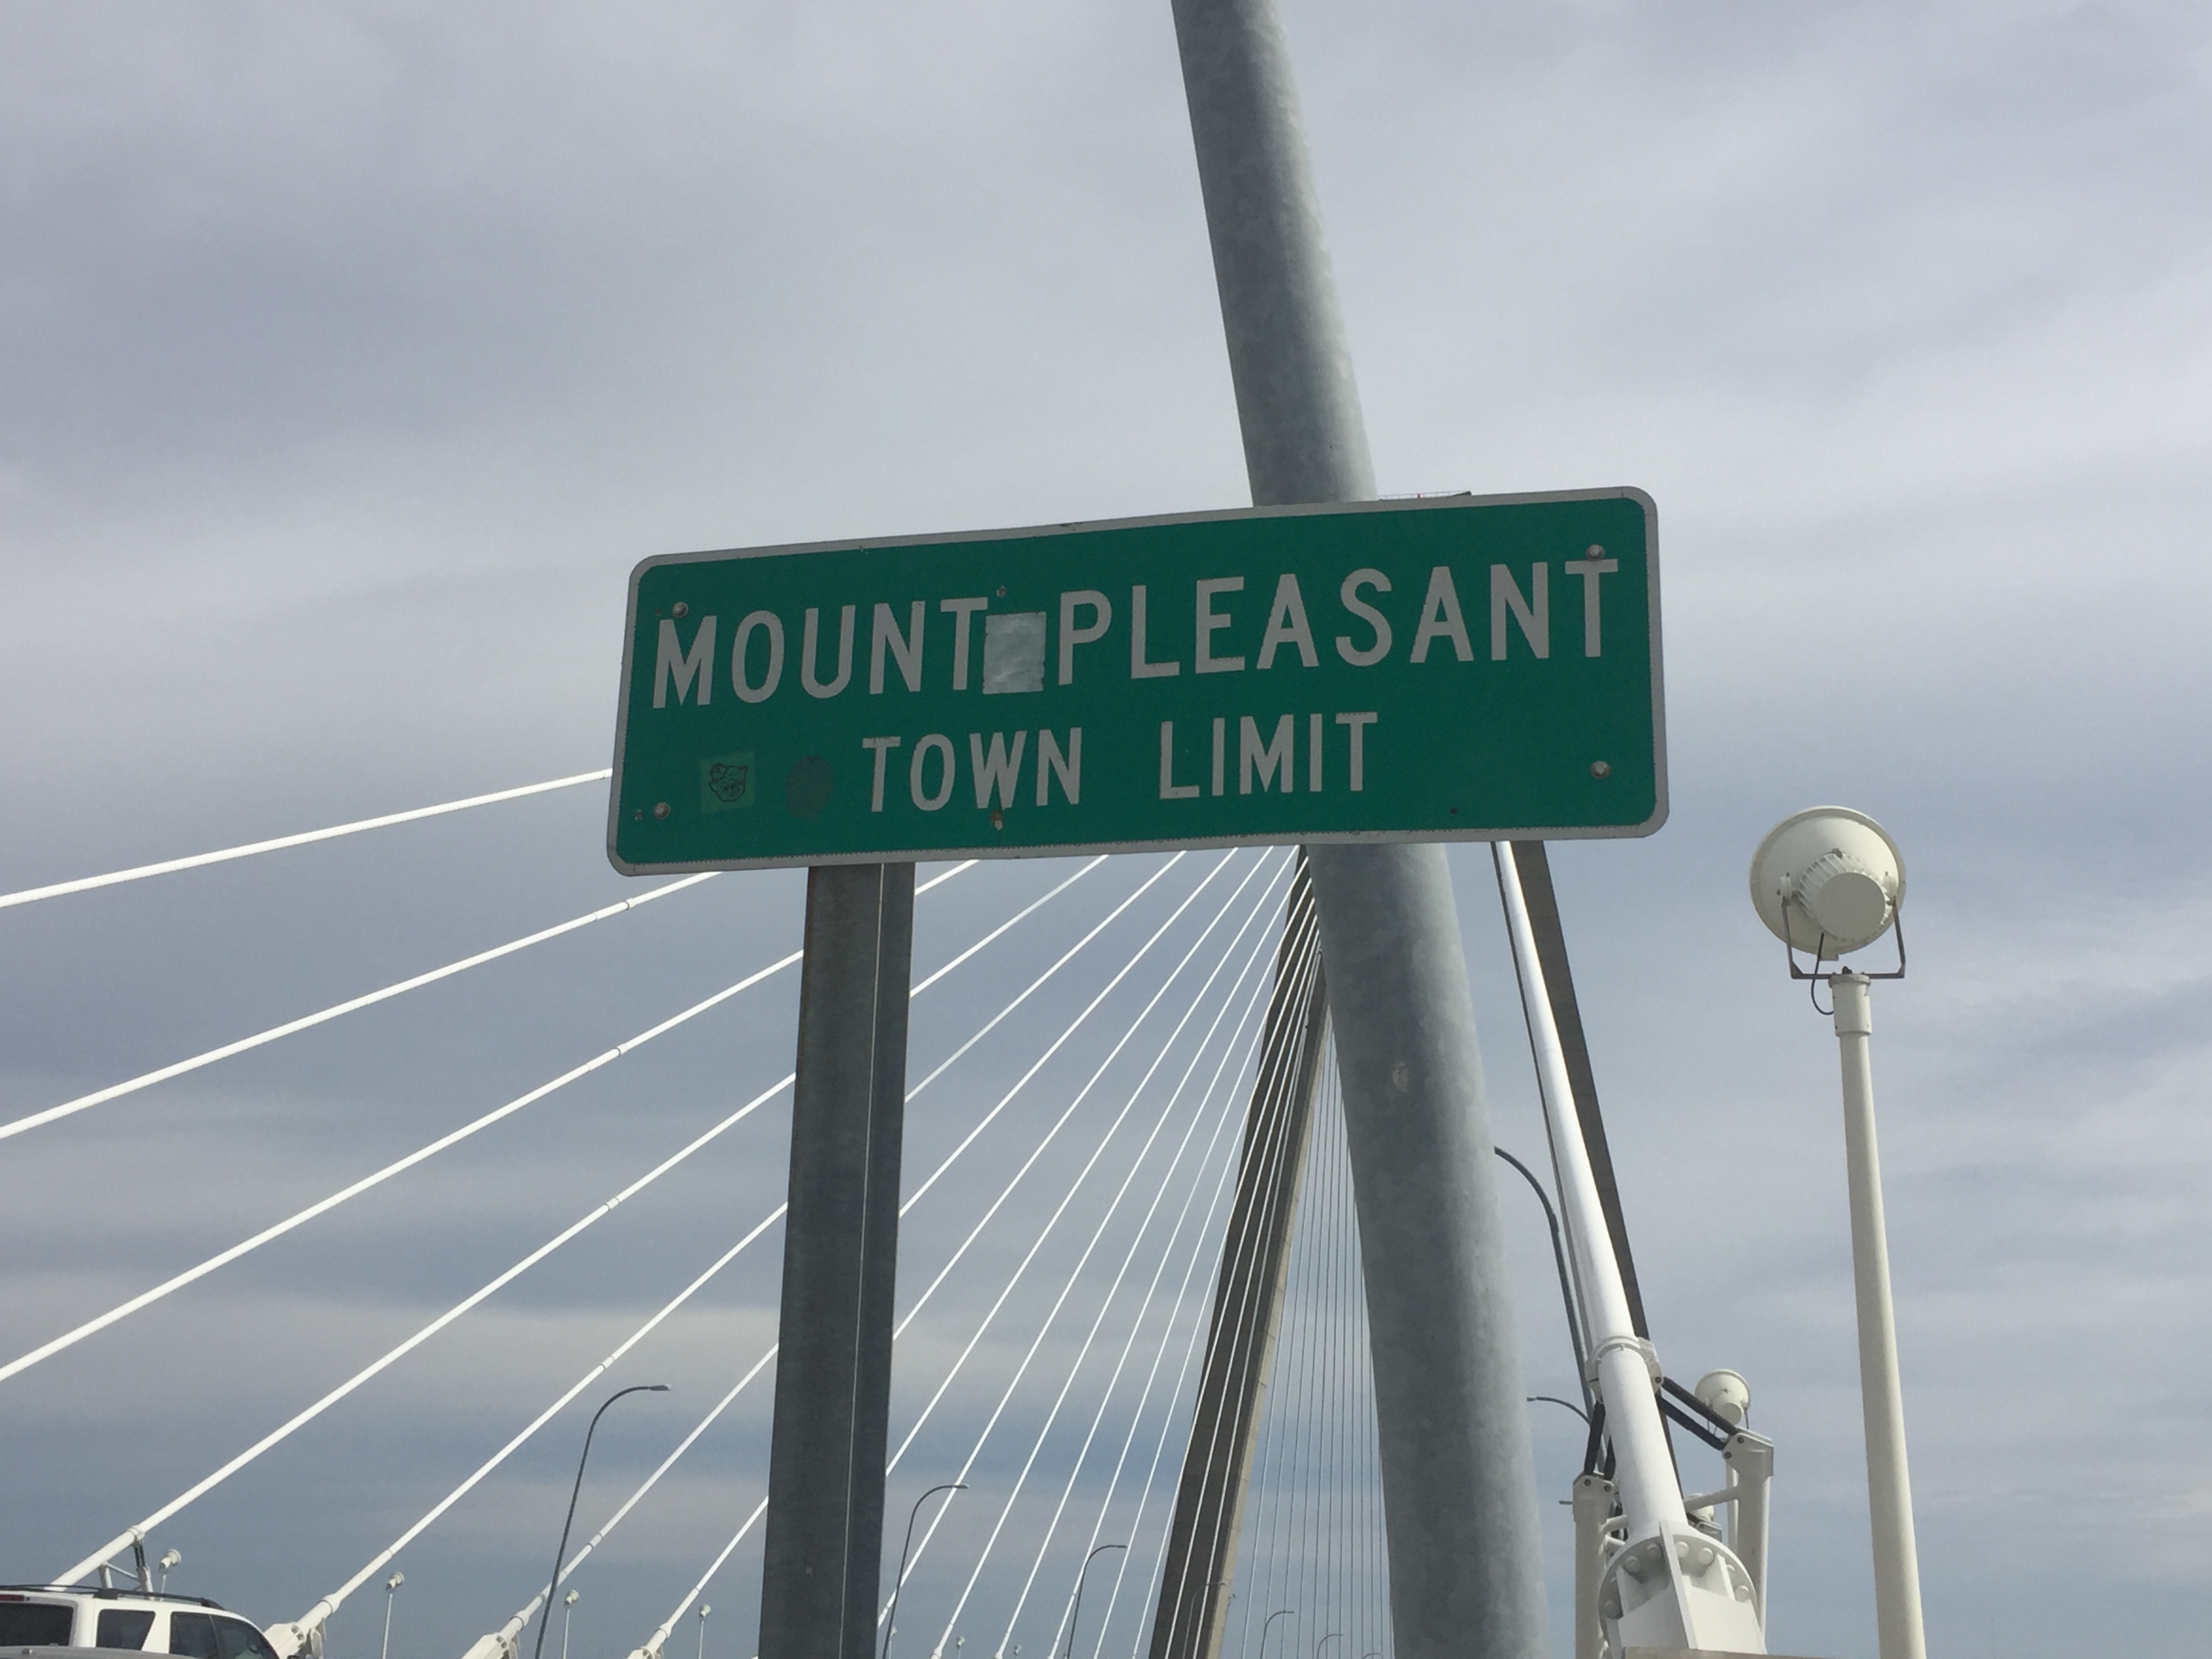 Mount Pleasant town line on Ravenel.